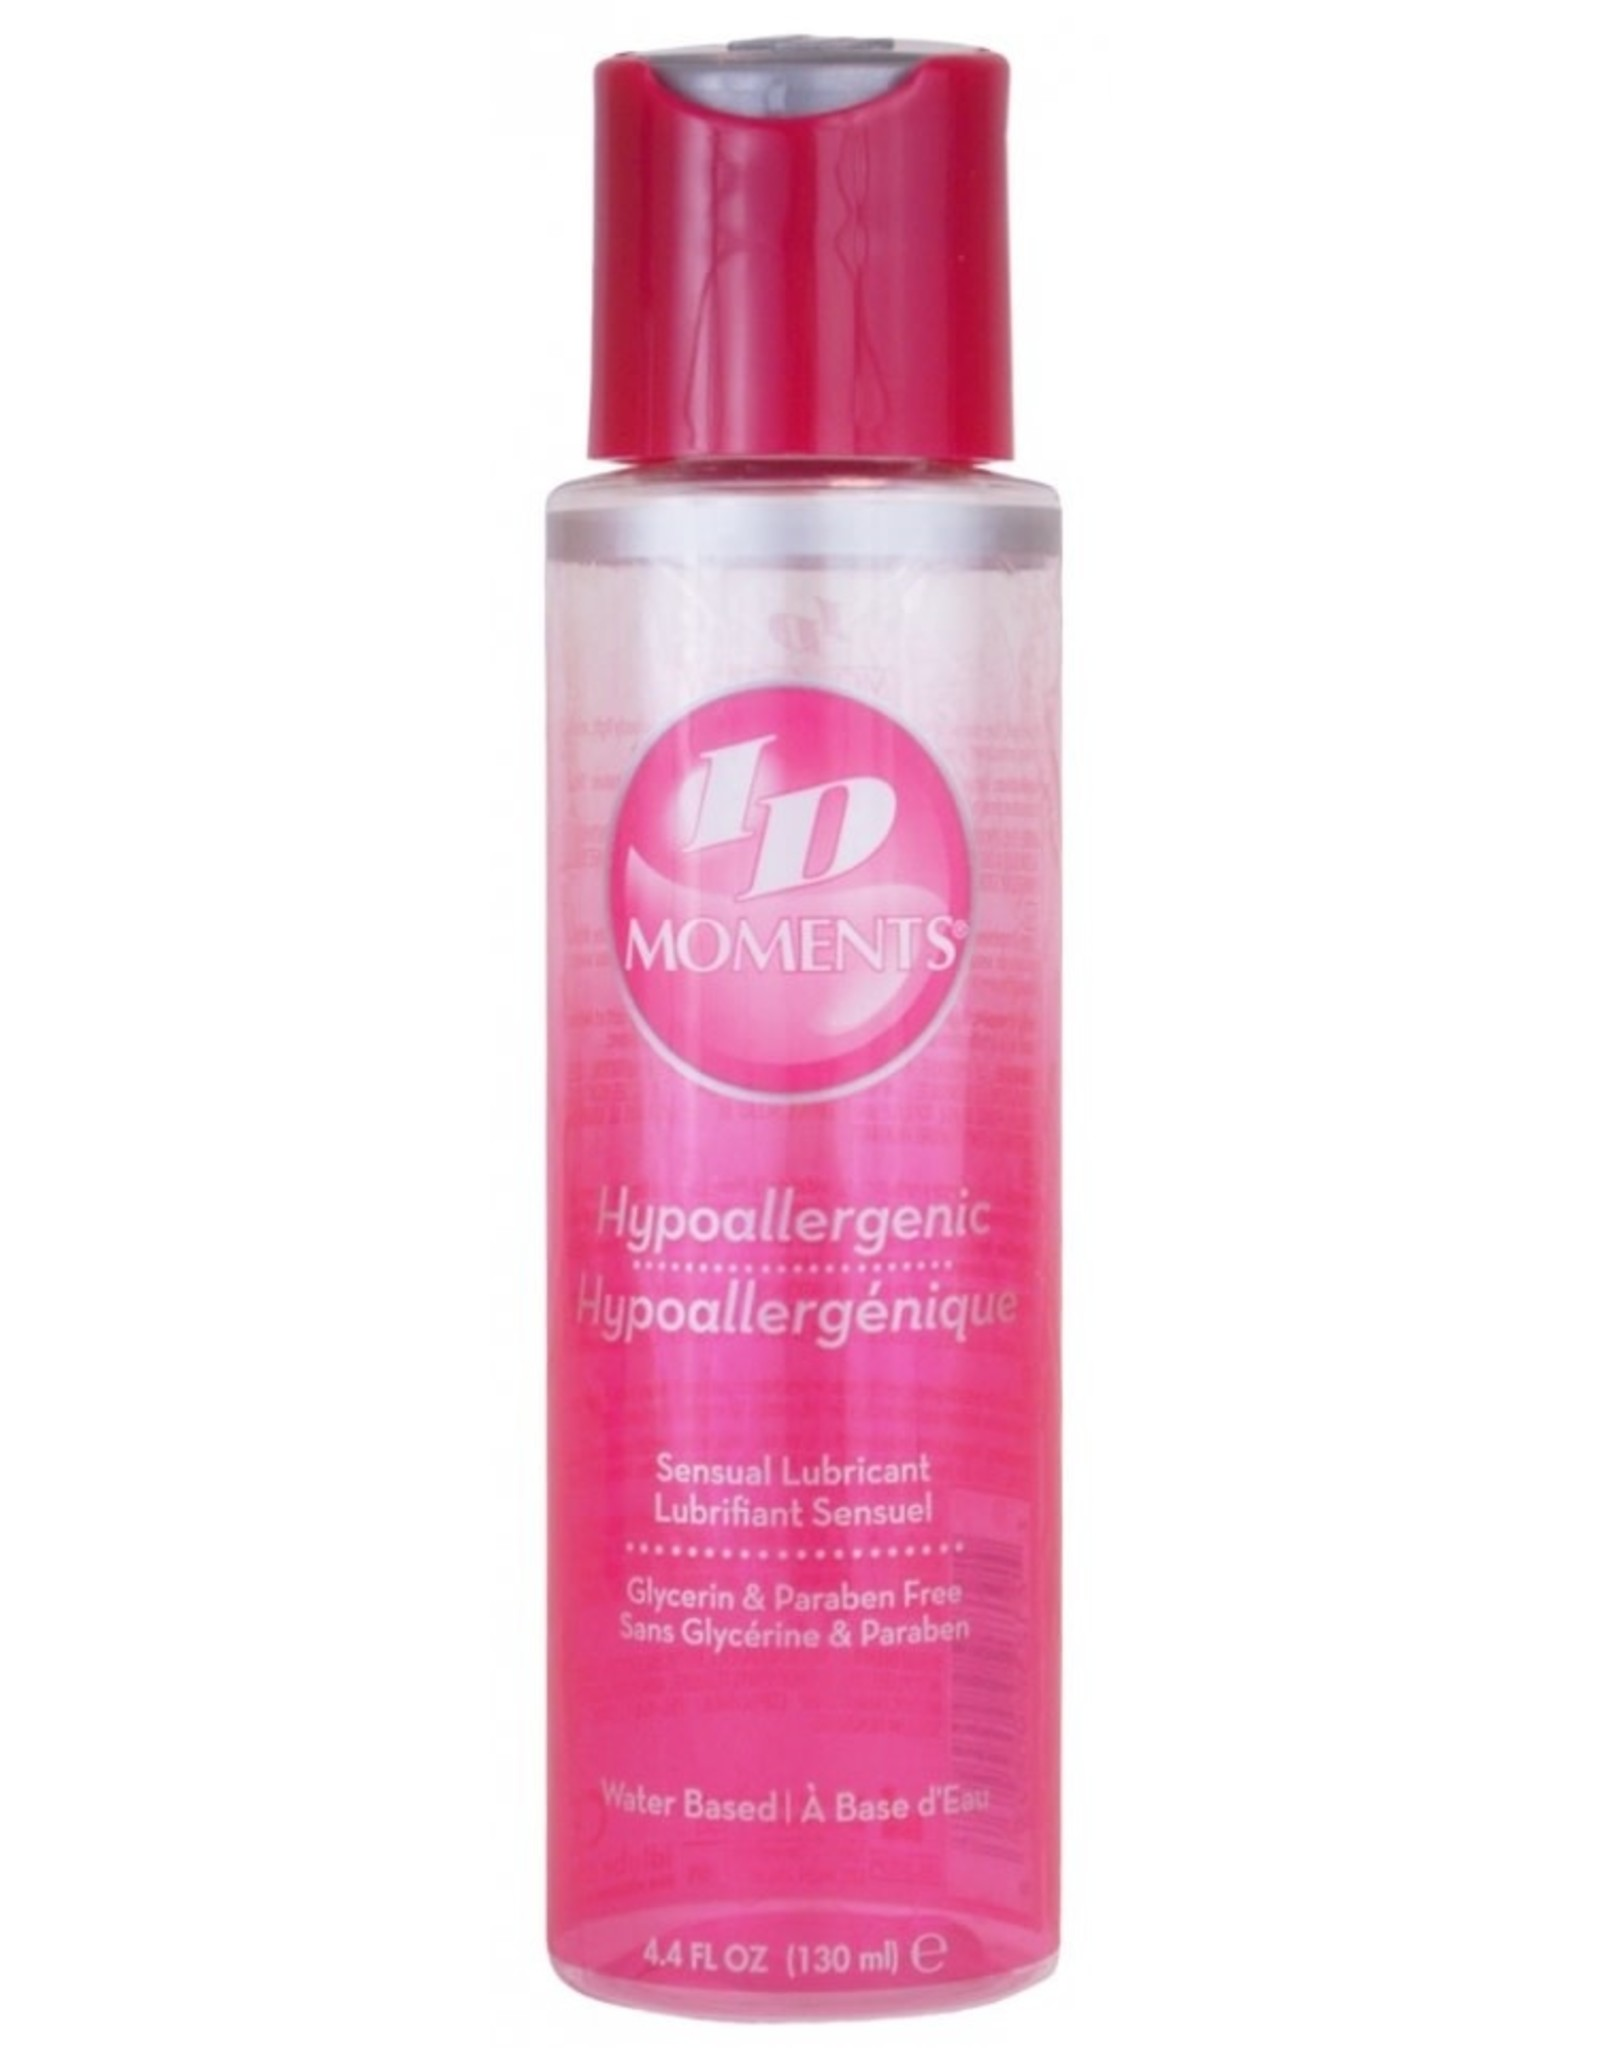 ID - MOMENTS - HYPOALLERGENIC - 4.4 oz